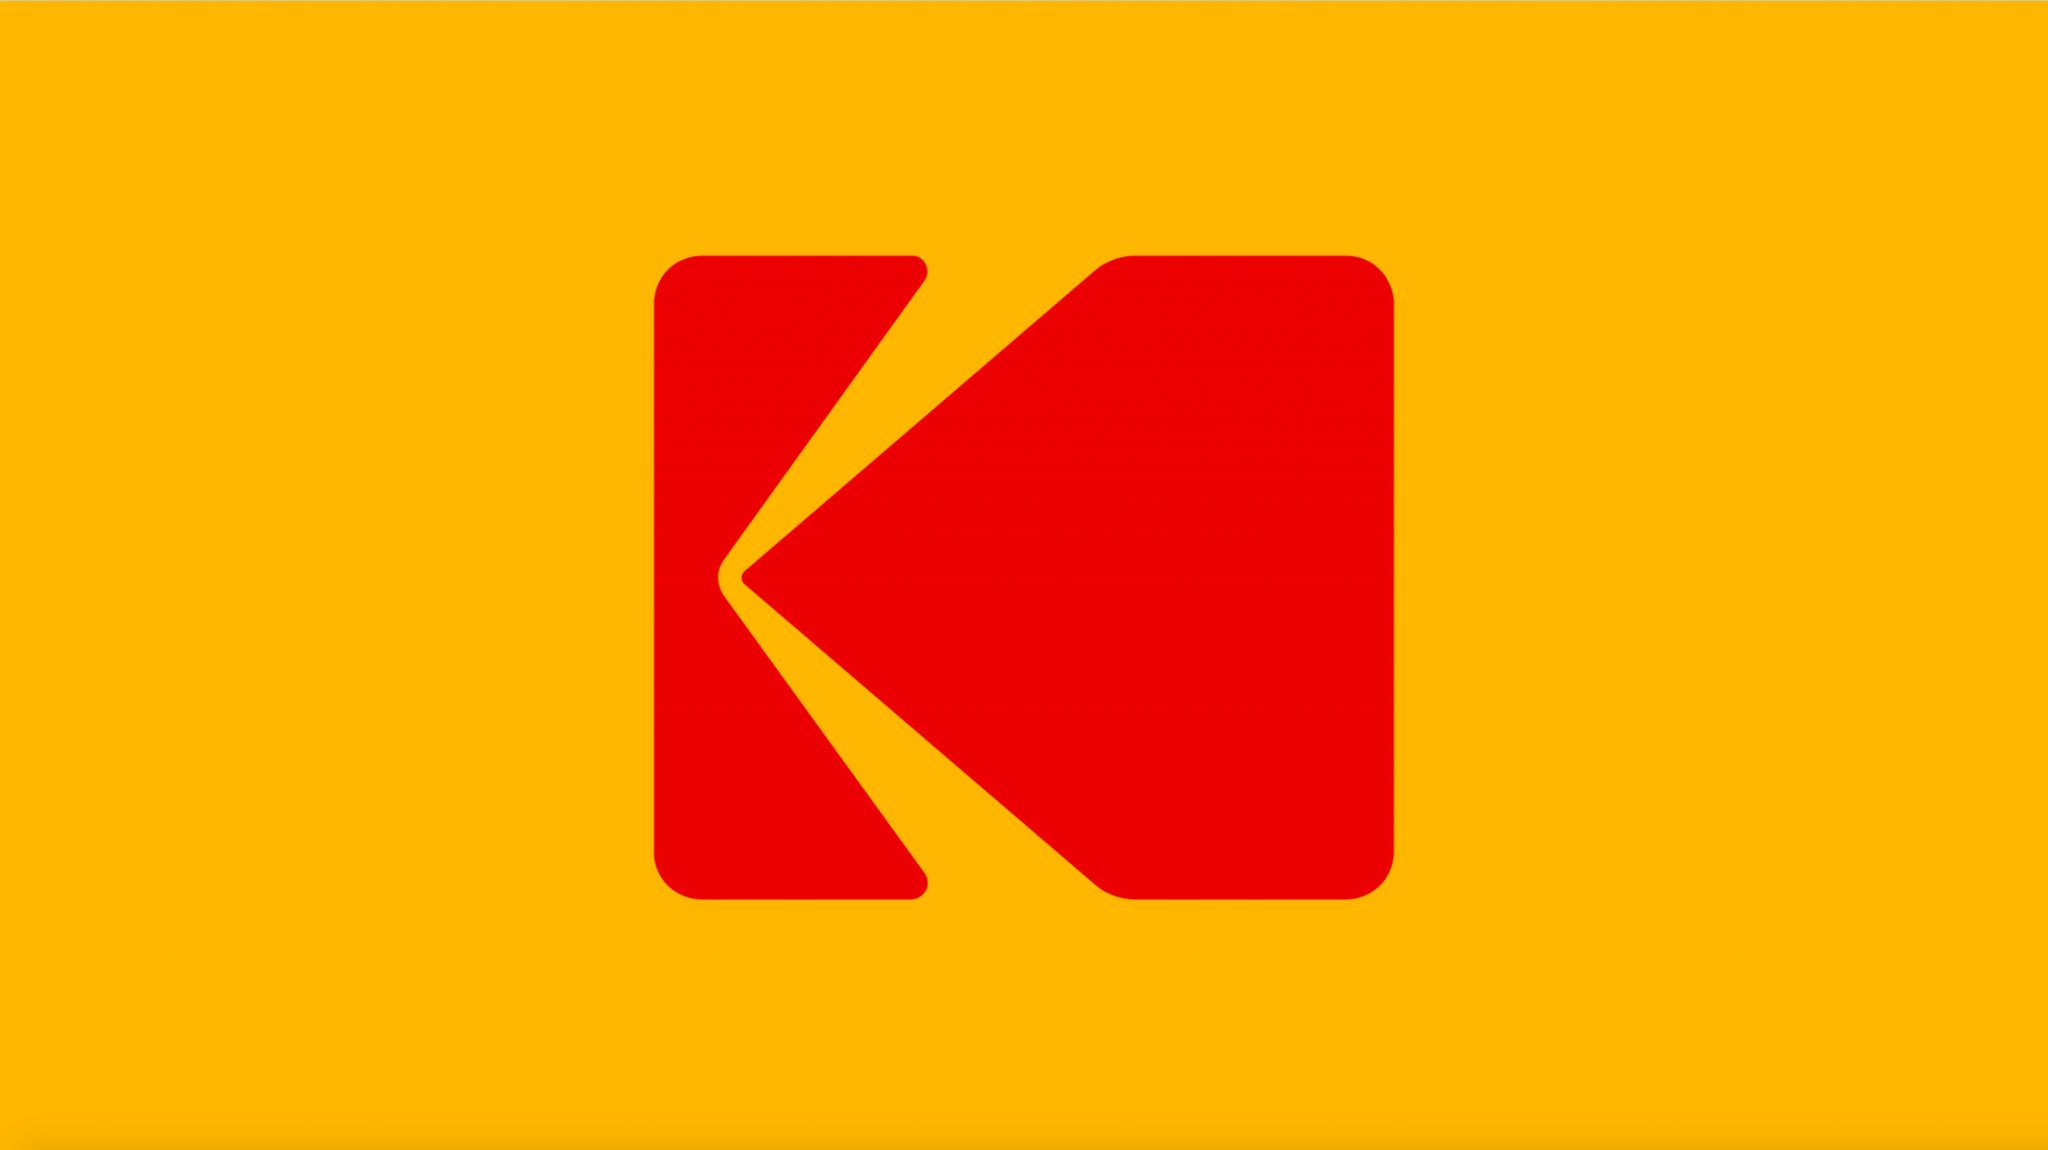 """For a few years now, the landscape has altered significantly bringing Kodak to banking: various external influencing factors jeopardise traditional retail banking."""